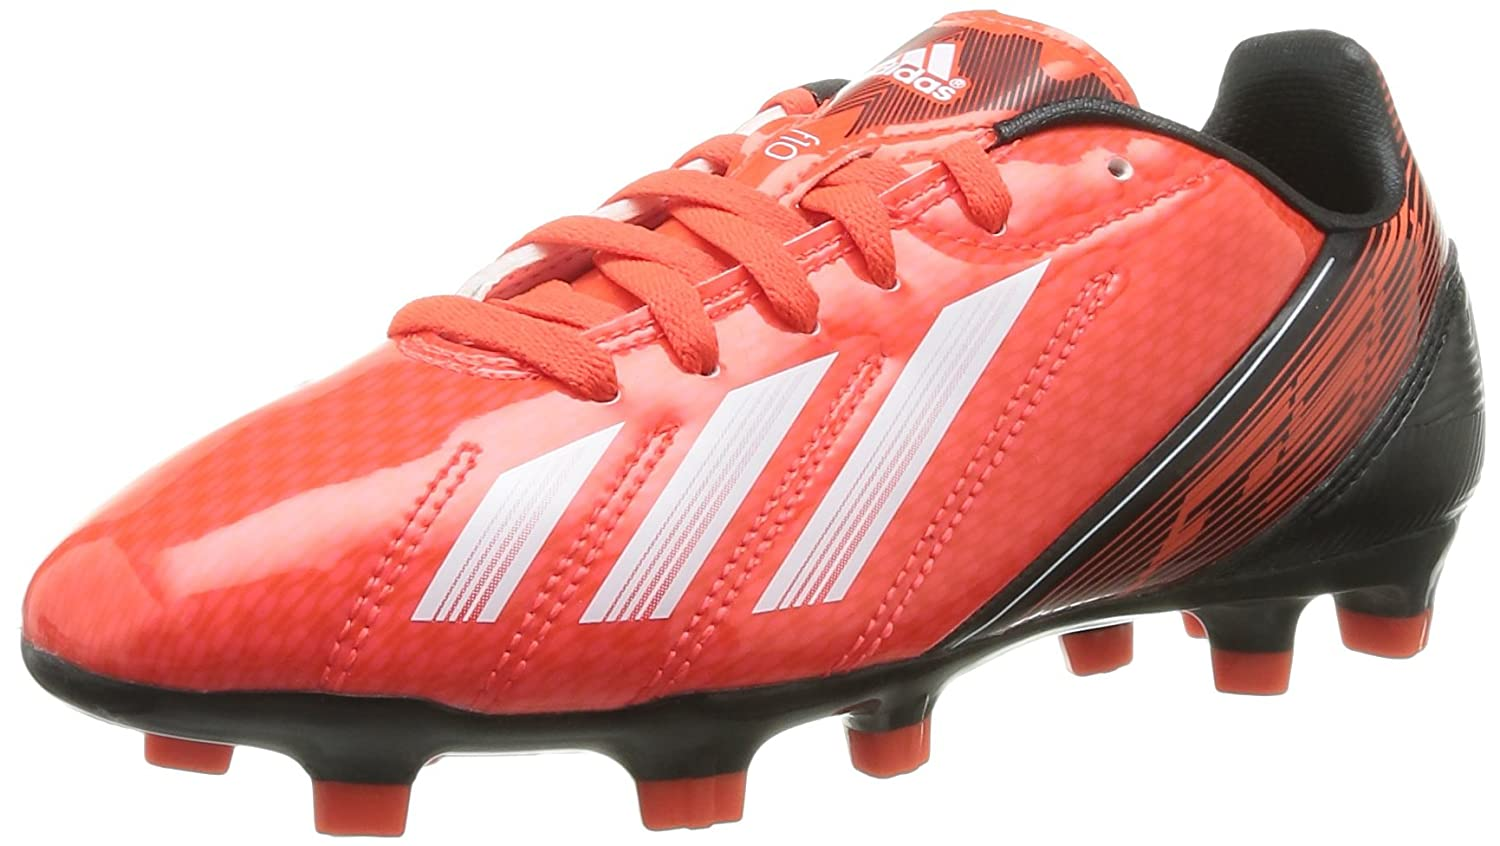 84c6b13c0 adidas F10 Traxion FG, Women's Football Boots: Amazon.co.uk: Shoes & Bags